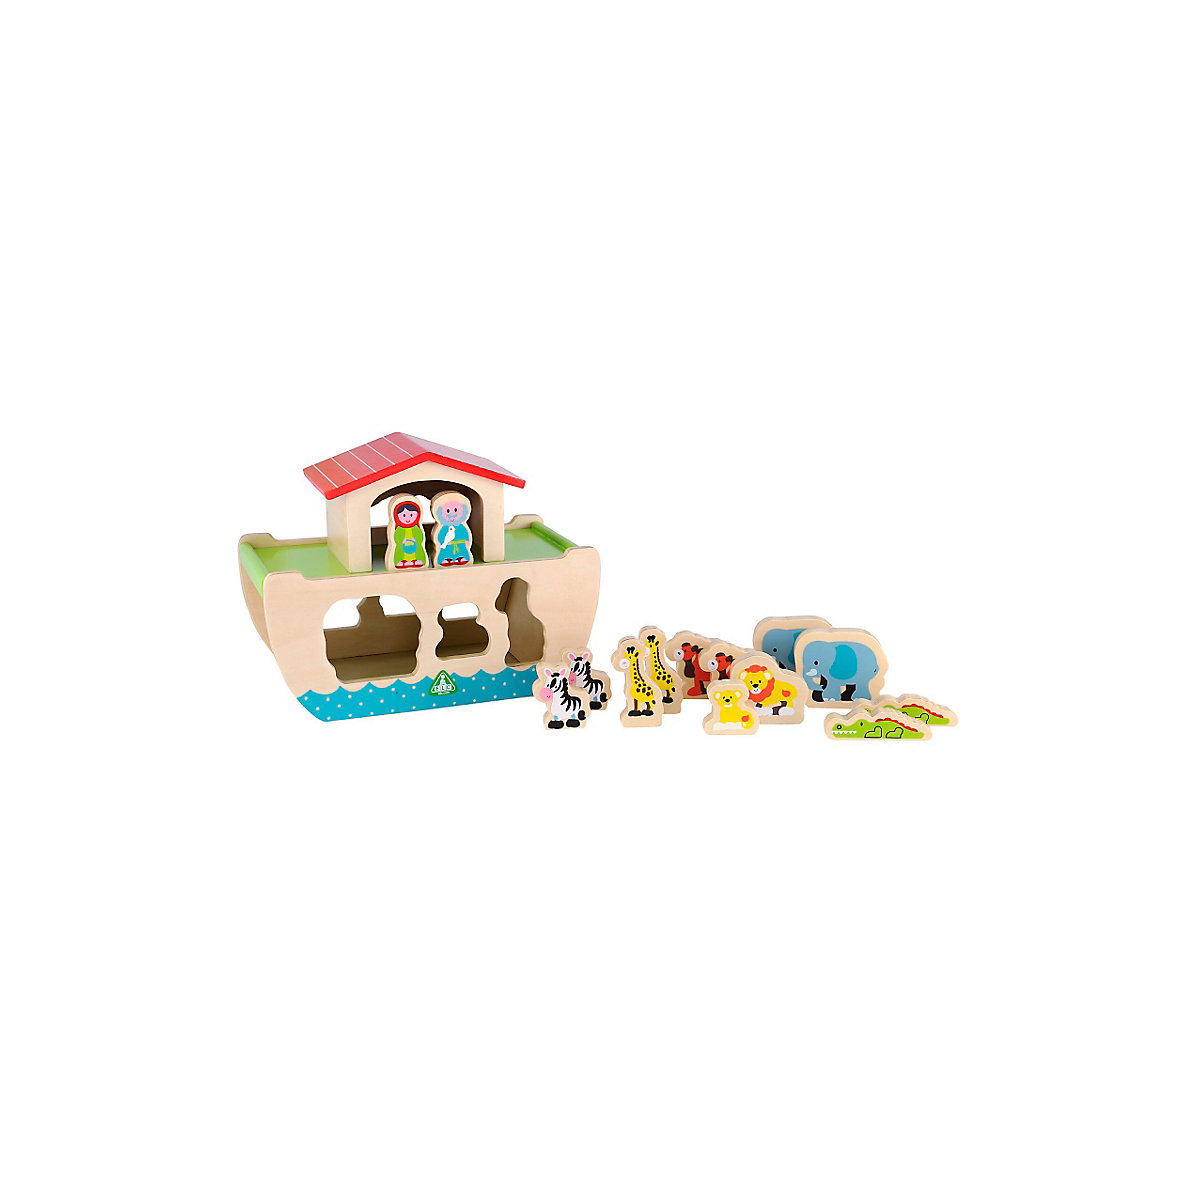 New ELC Boys and Girls Wooden Noah's Ark Toy From 12 months - Toddler Gifts